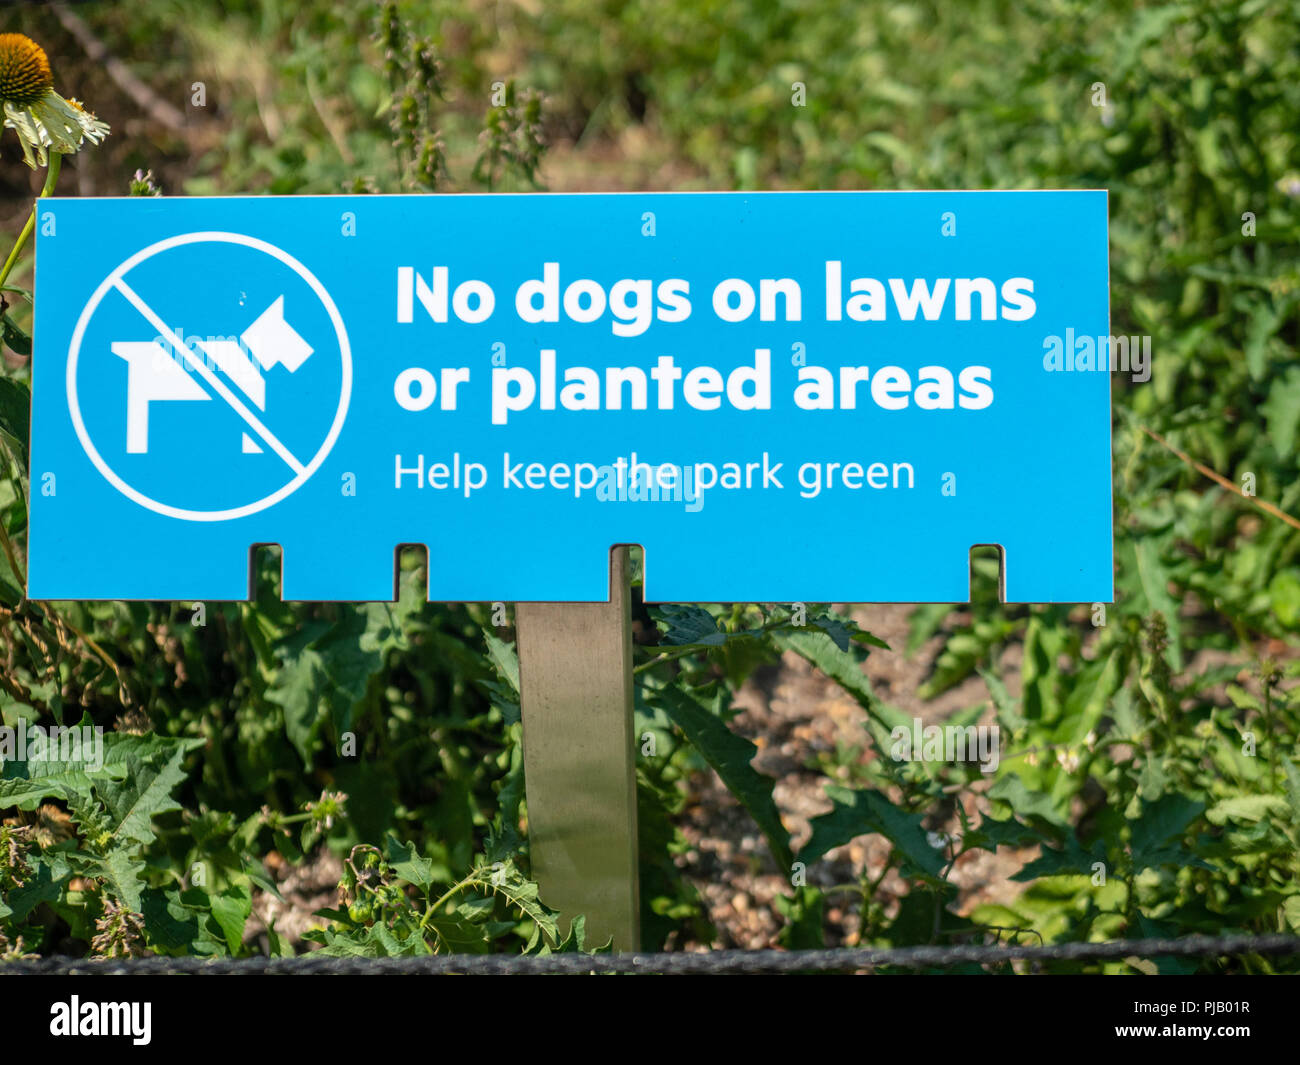 A no dogs on lawns or planted areas, help keep the park green sign - Stock Image